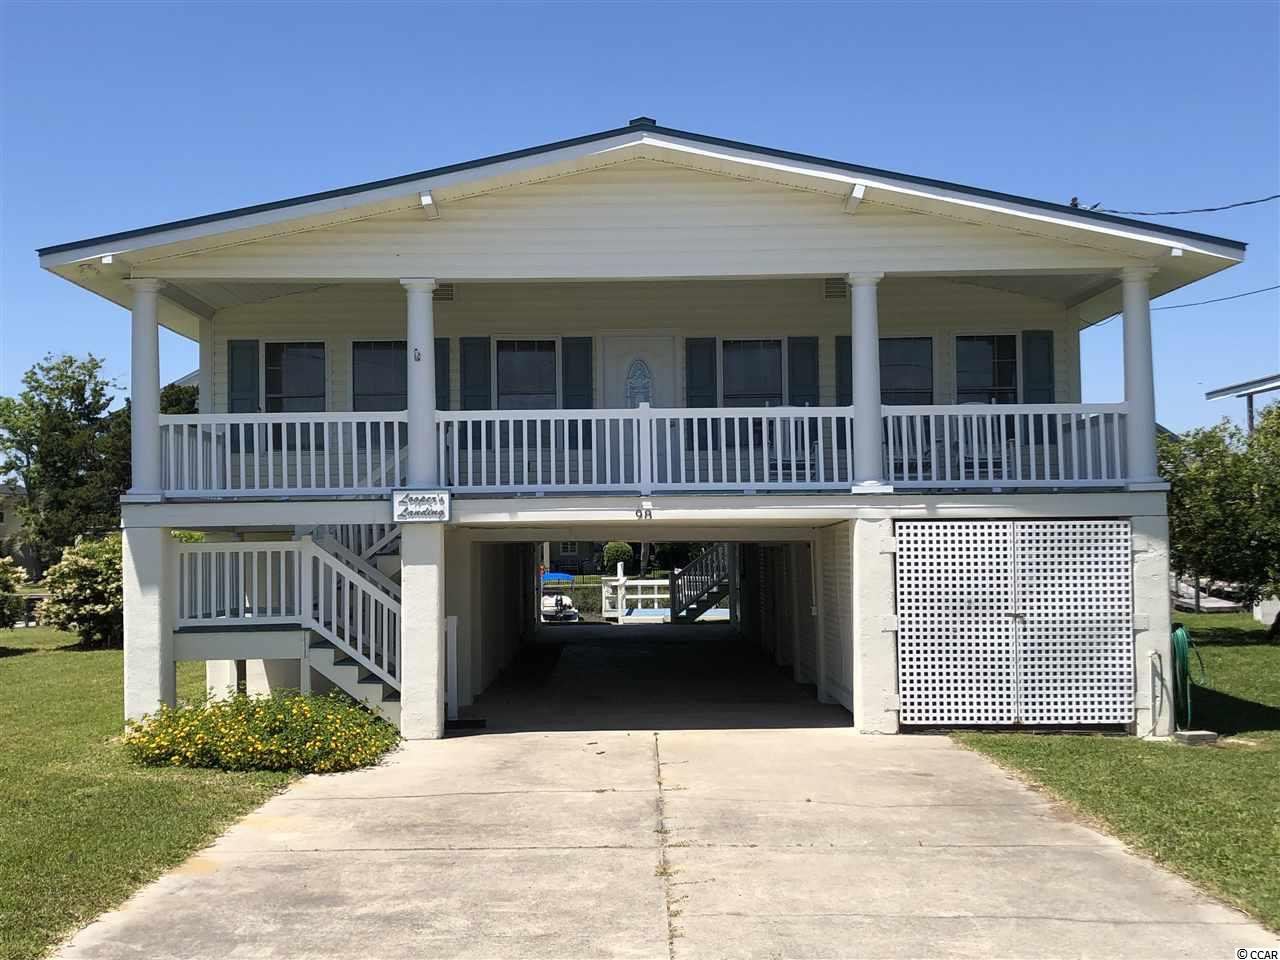 PRICE REDUCED...FIXED & FLOATING Dock in the canal w/access to the creek & Atlantic Ocean w/ Sandy Beach.  Concrete Sea Wall. Raised Beach House.   7 Bedroom/3.5 Bath. Large Master Suite.  5 Bedrooms /3 Baths on Main Floor. Family Room, DR, Kitchen w/ Breakfast Bar. 35 X 10  Front Porch. 2 Bedroom 1/2 Bath & Enclosed Outside Shower Down. Bedrooms Down have Heat & Air. Laundry Room. Tool Storage/Work shop, Boat Storage & Mower Storage under House.  Paved Driveway. Close to Beach, Fishing, Dining, Shopping and Golf.  Hurricane protection window seal. NOT A RENTAL.